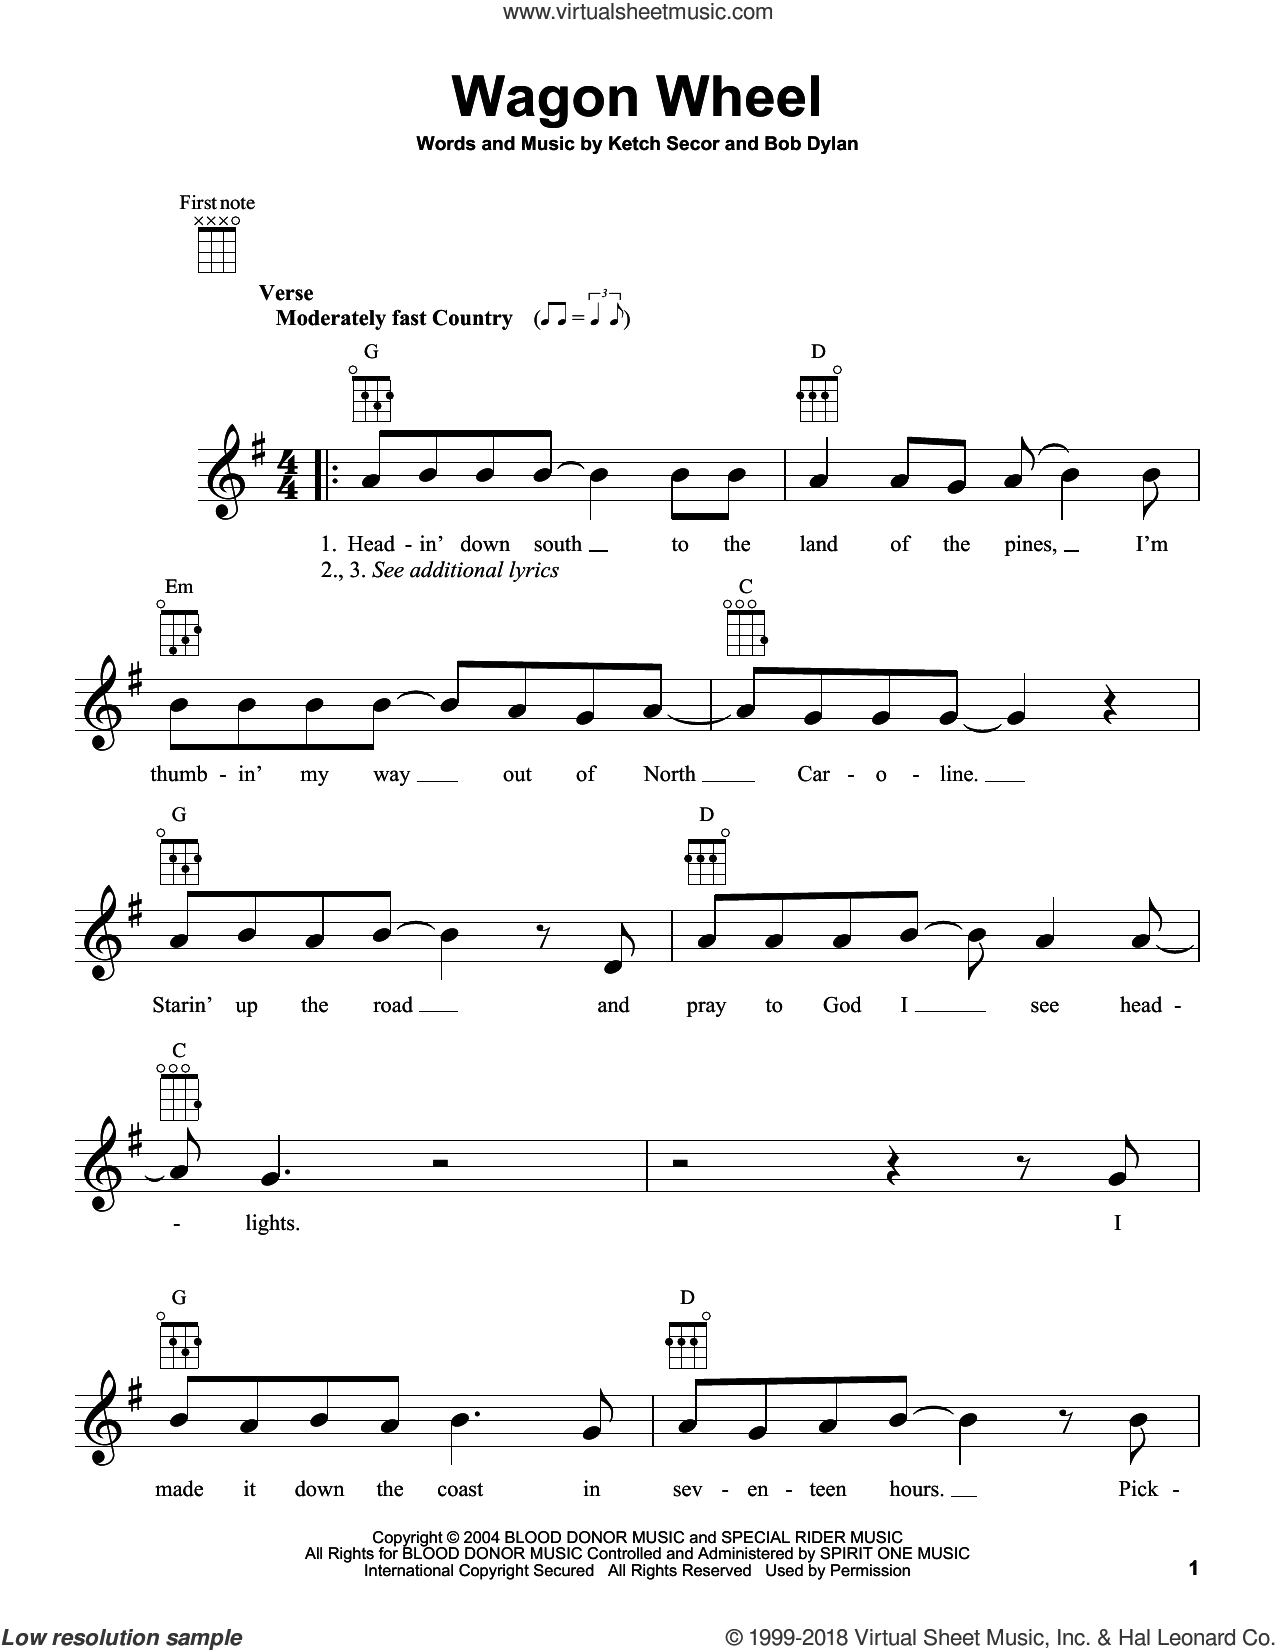 Wagon Wheel sheet music for ukulele by Bob Dylan, Old Crow Medicine Show and Ketch Secor, intermediate skill level